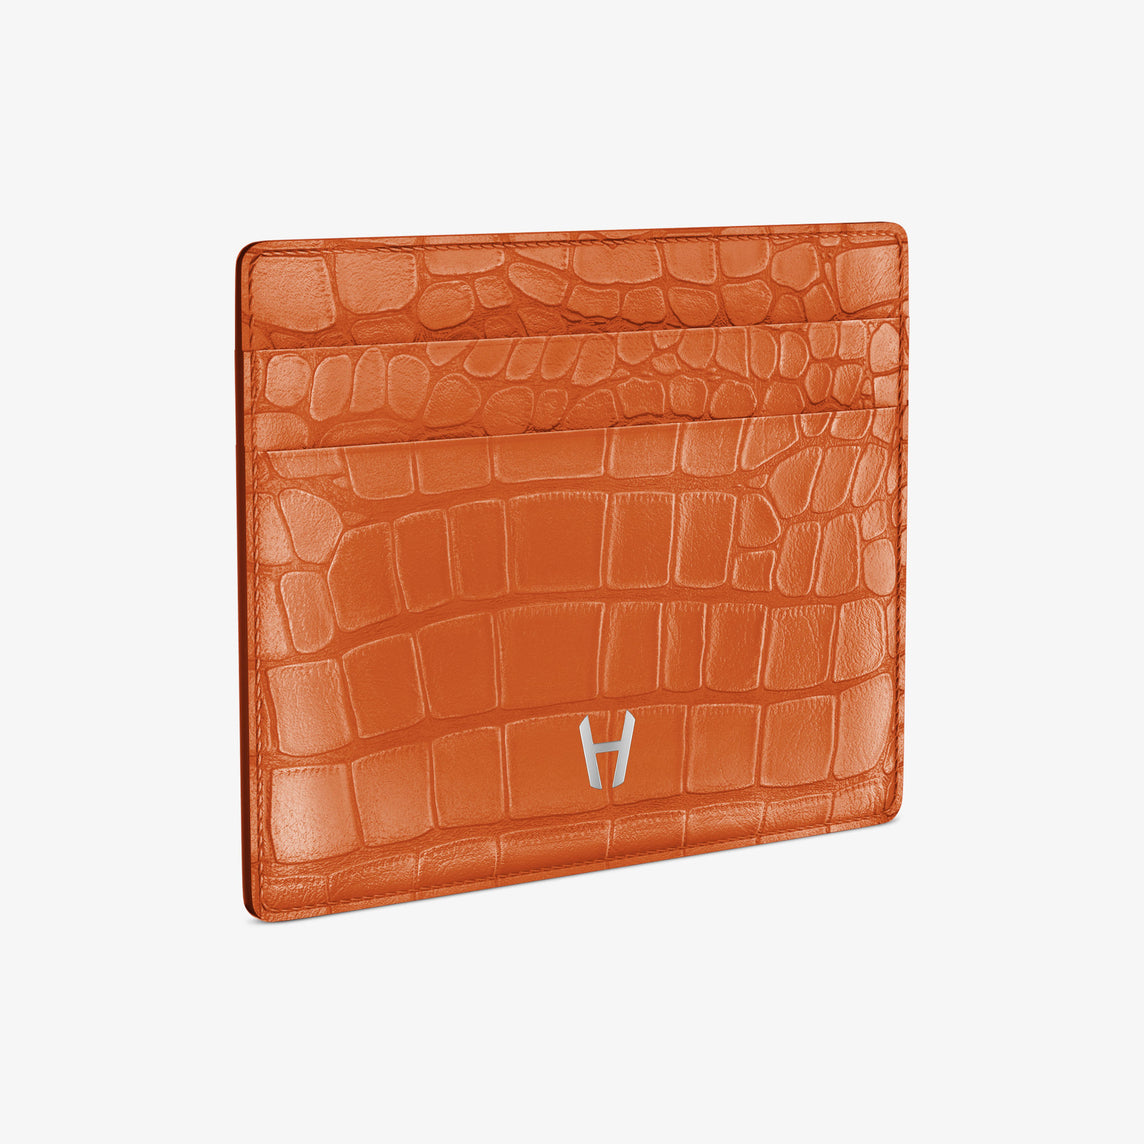 Alligator Cardholder 001b | Orange Sunset - Stainless Steel